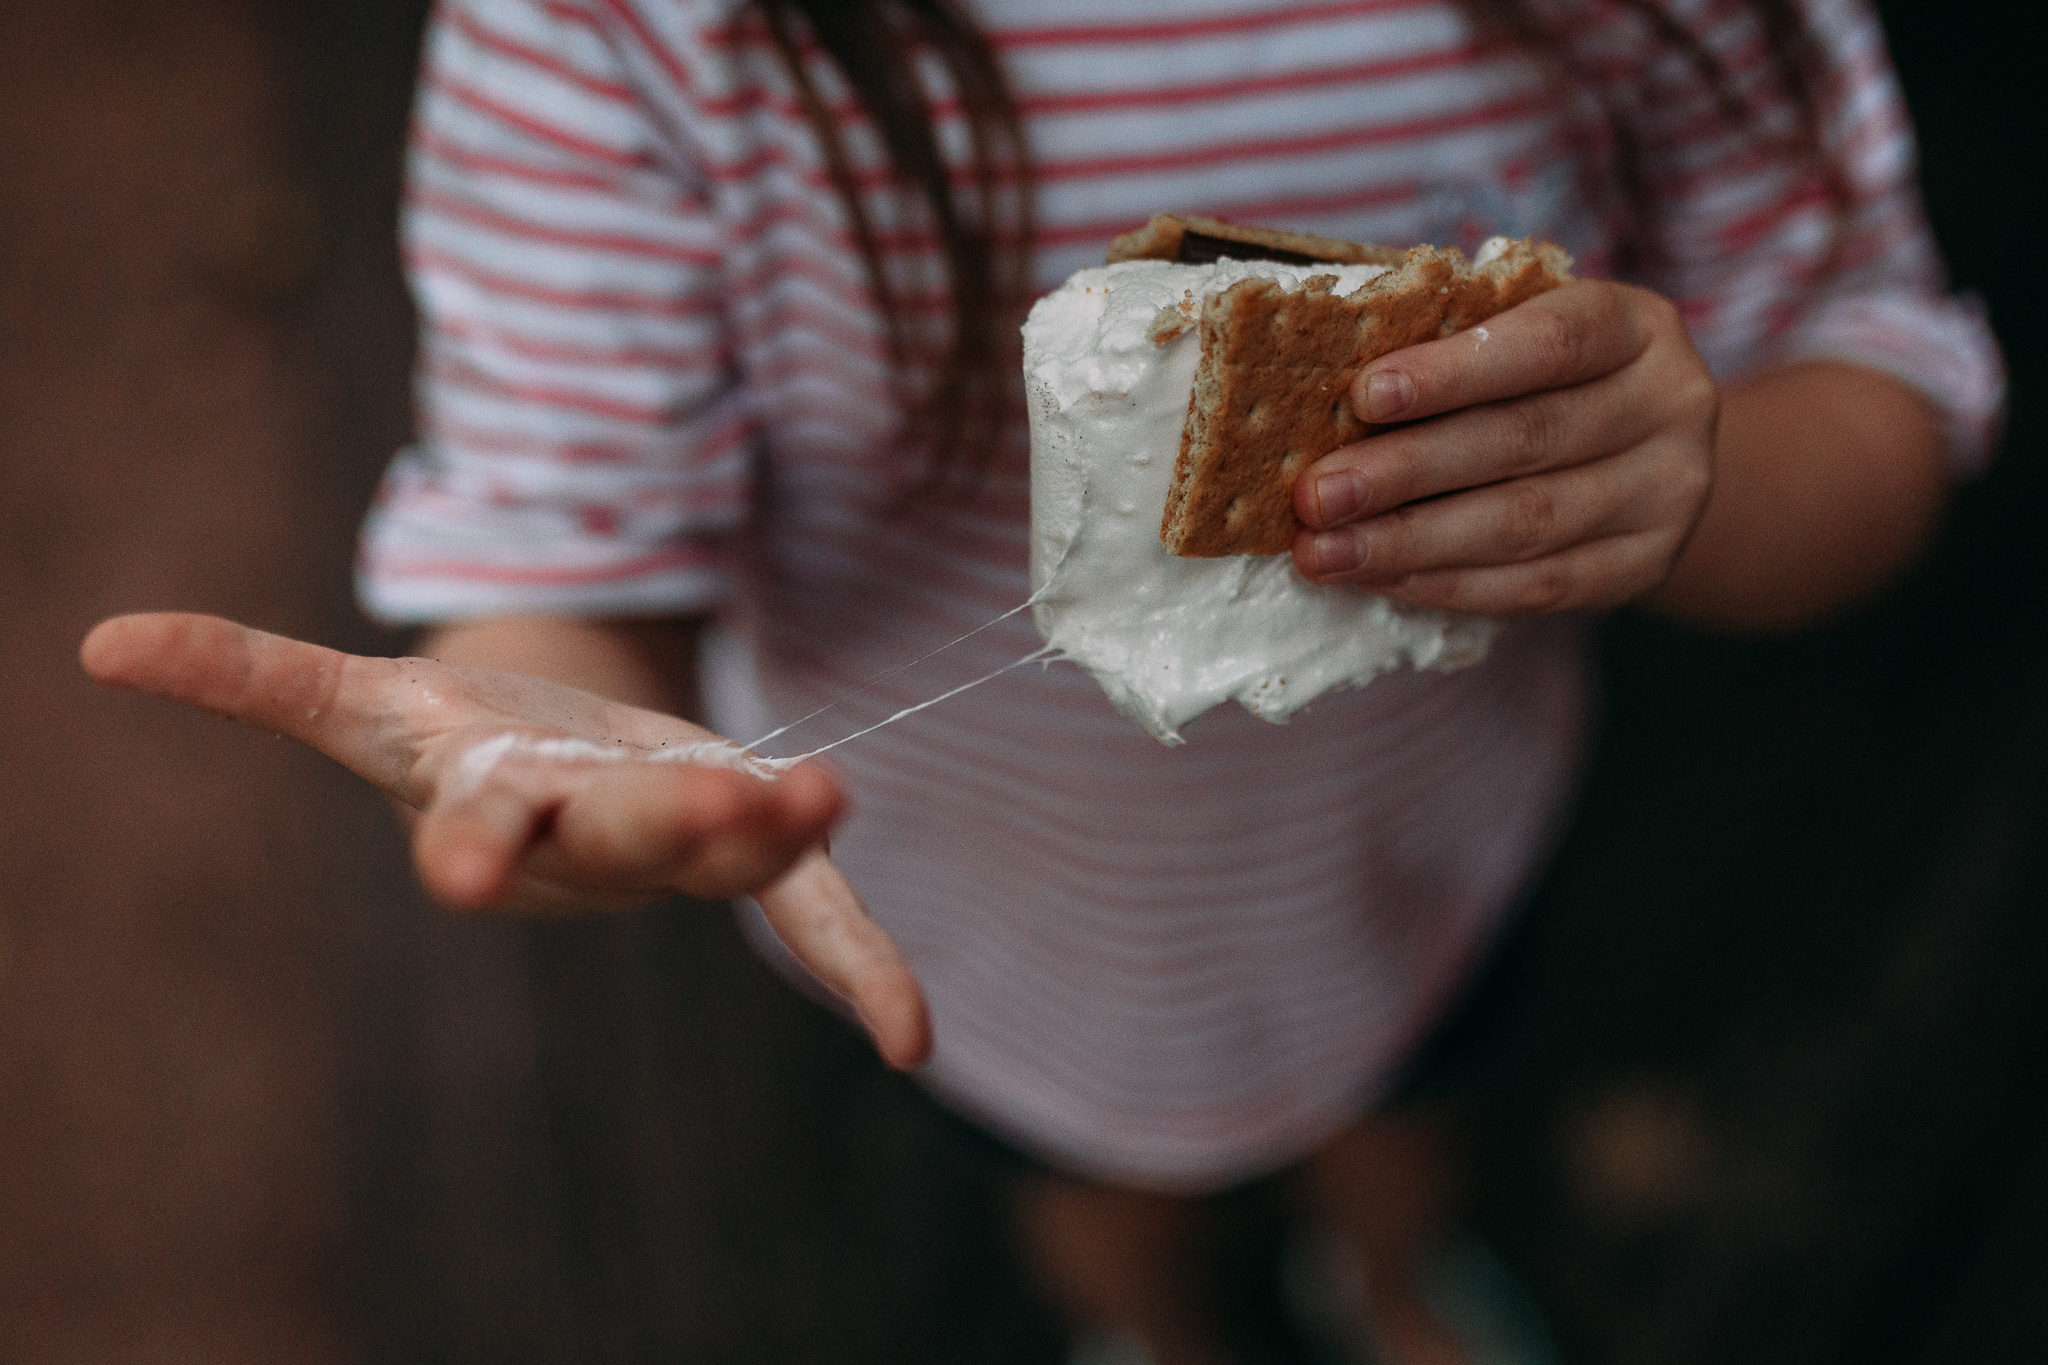 marshmallow smore hands details messy summer Ashburn Loudoun Northern Virginia family lifestyle documentary childhood Marti Austin Photography